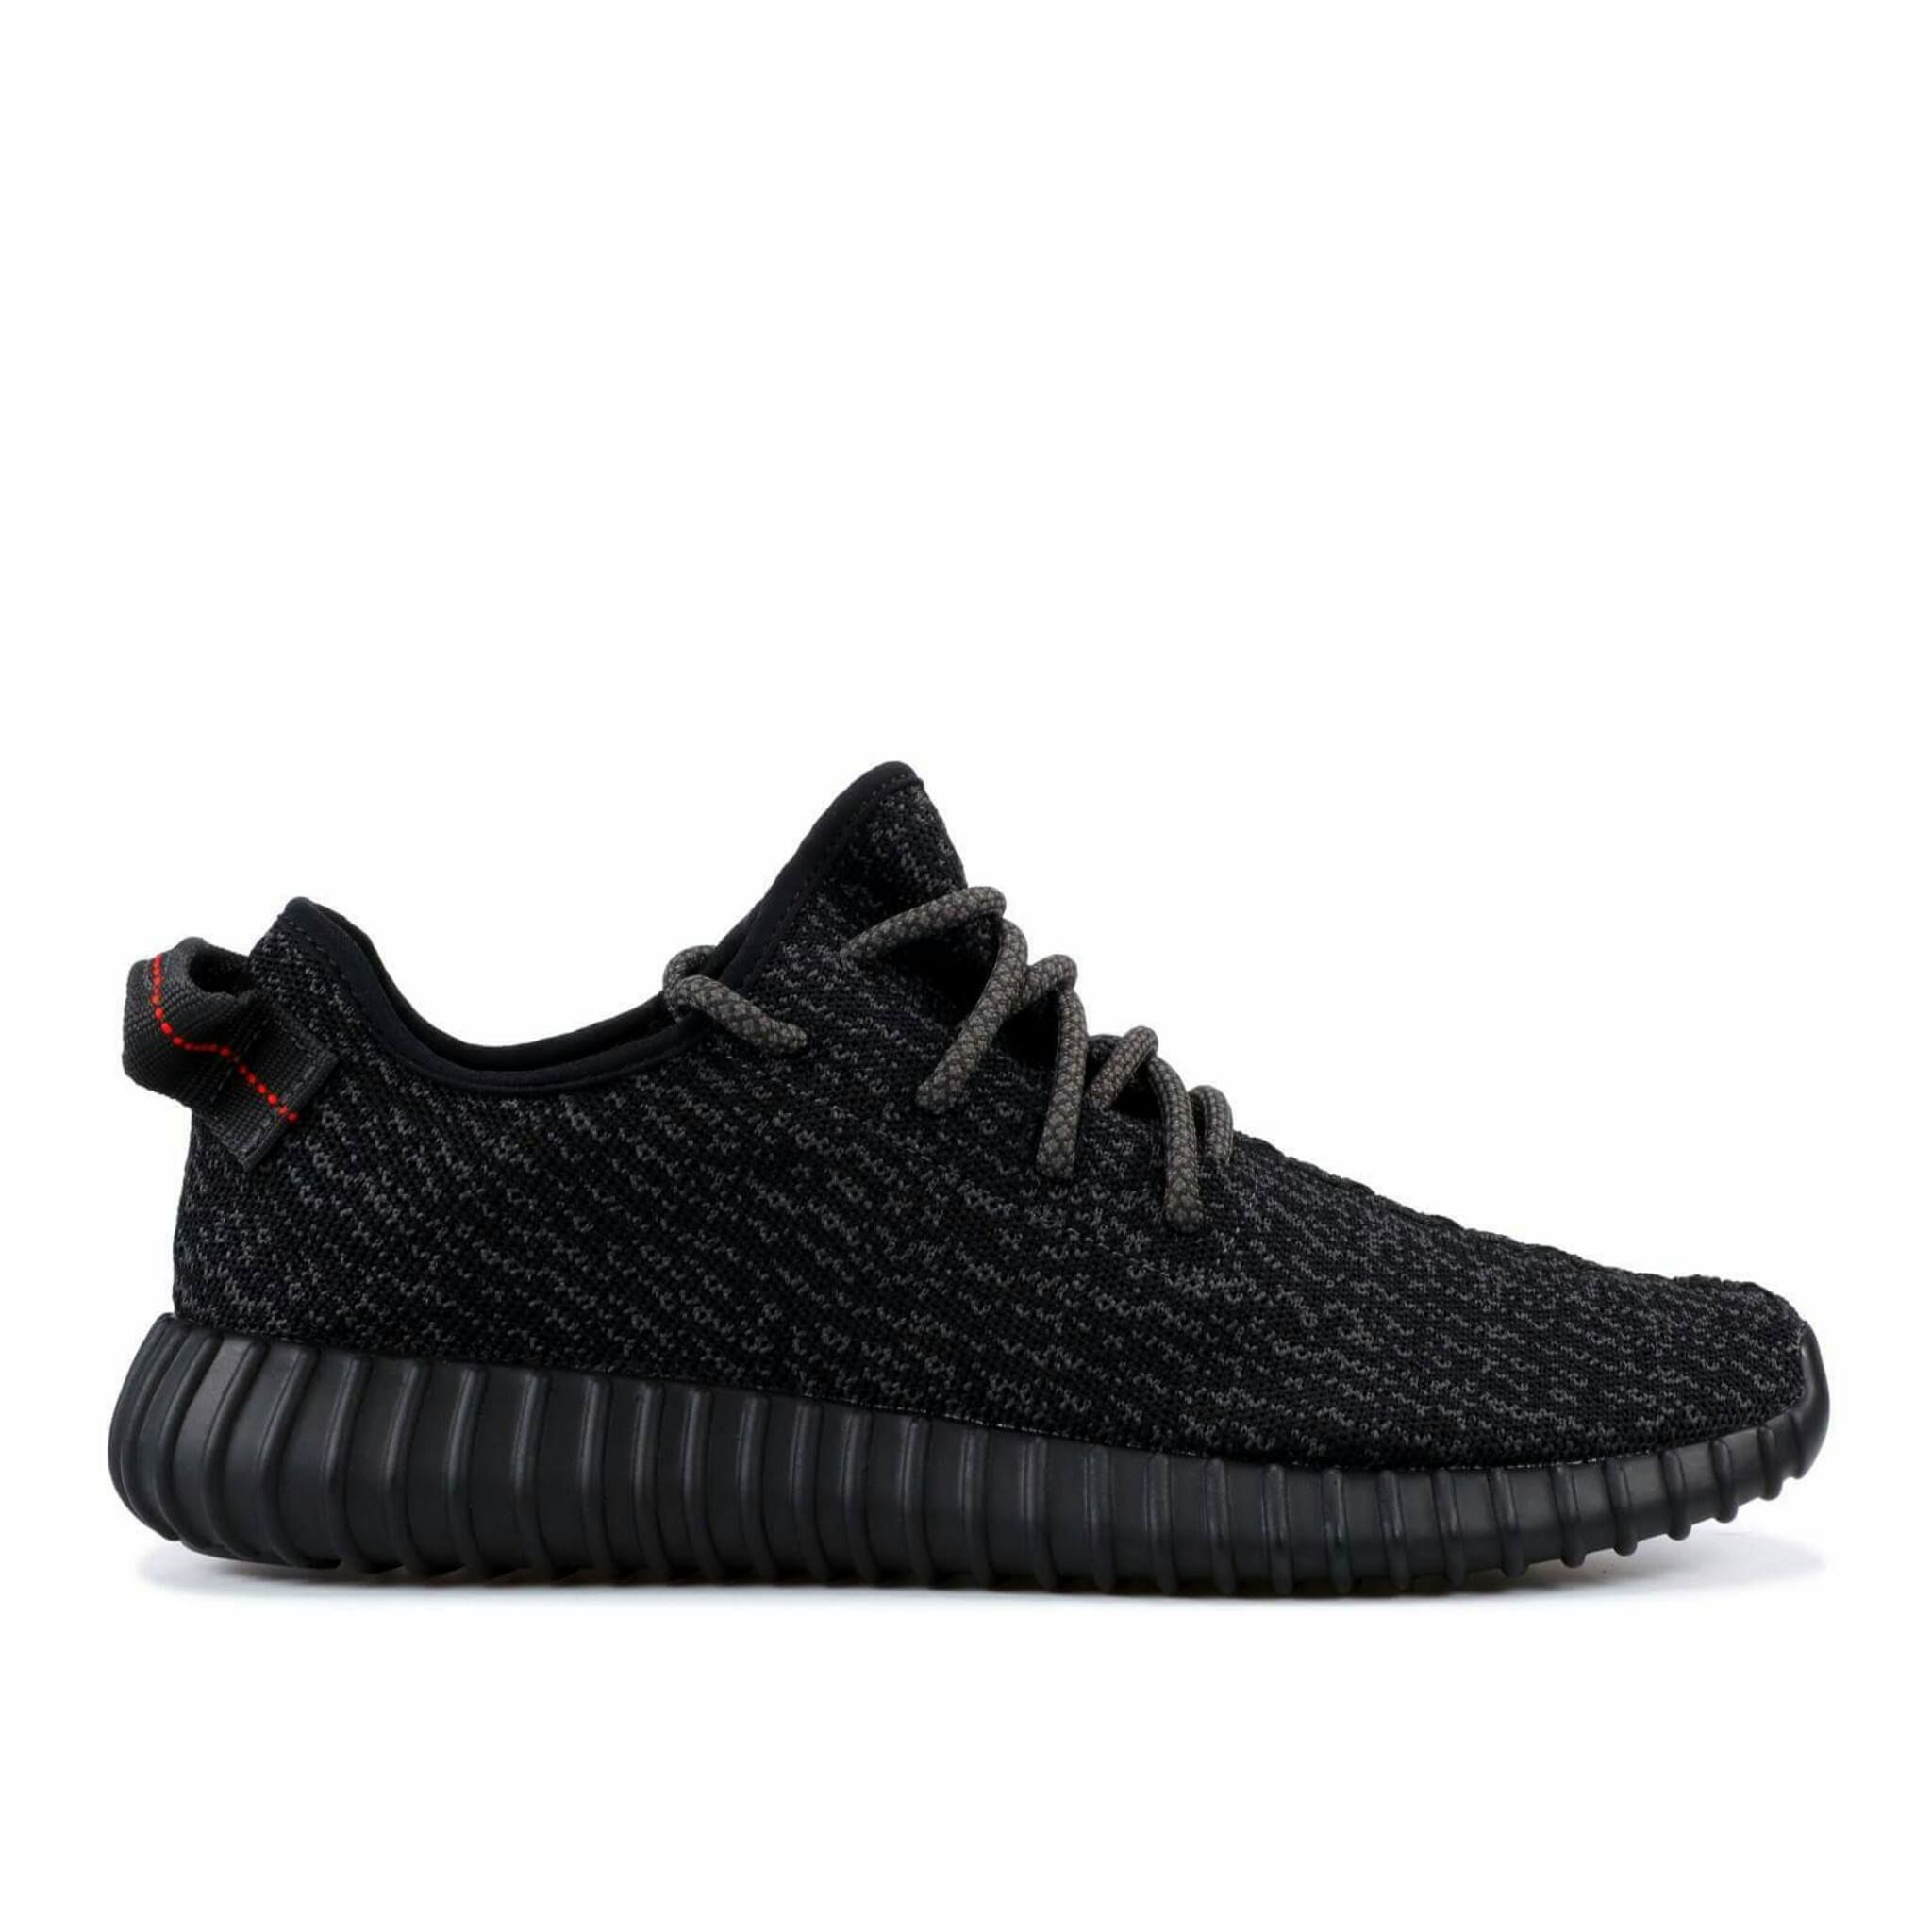 5c2099cd Adidas Yeezy 350 V1 Pirate Black For WomenSizes: 38 – 45. Colorway: Pirate  Black Material: Mixed Material. Availability: In Stock.